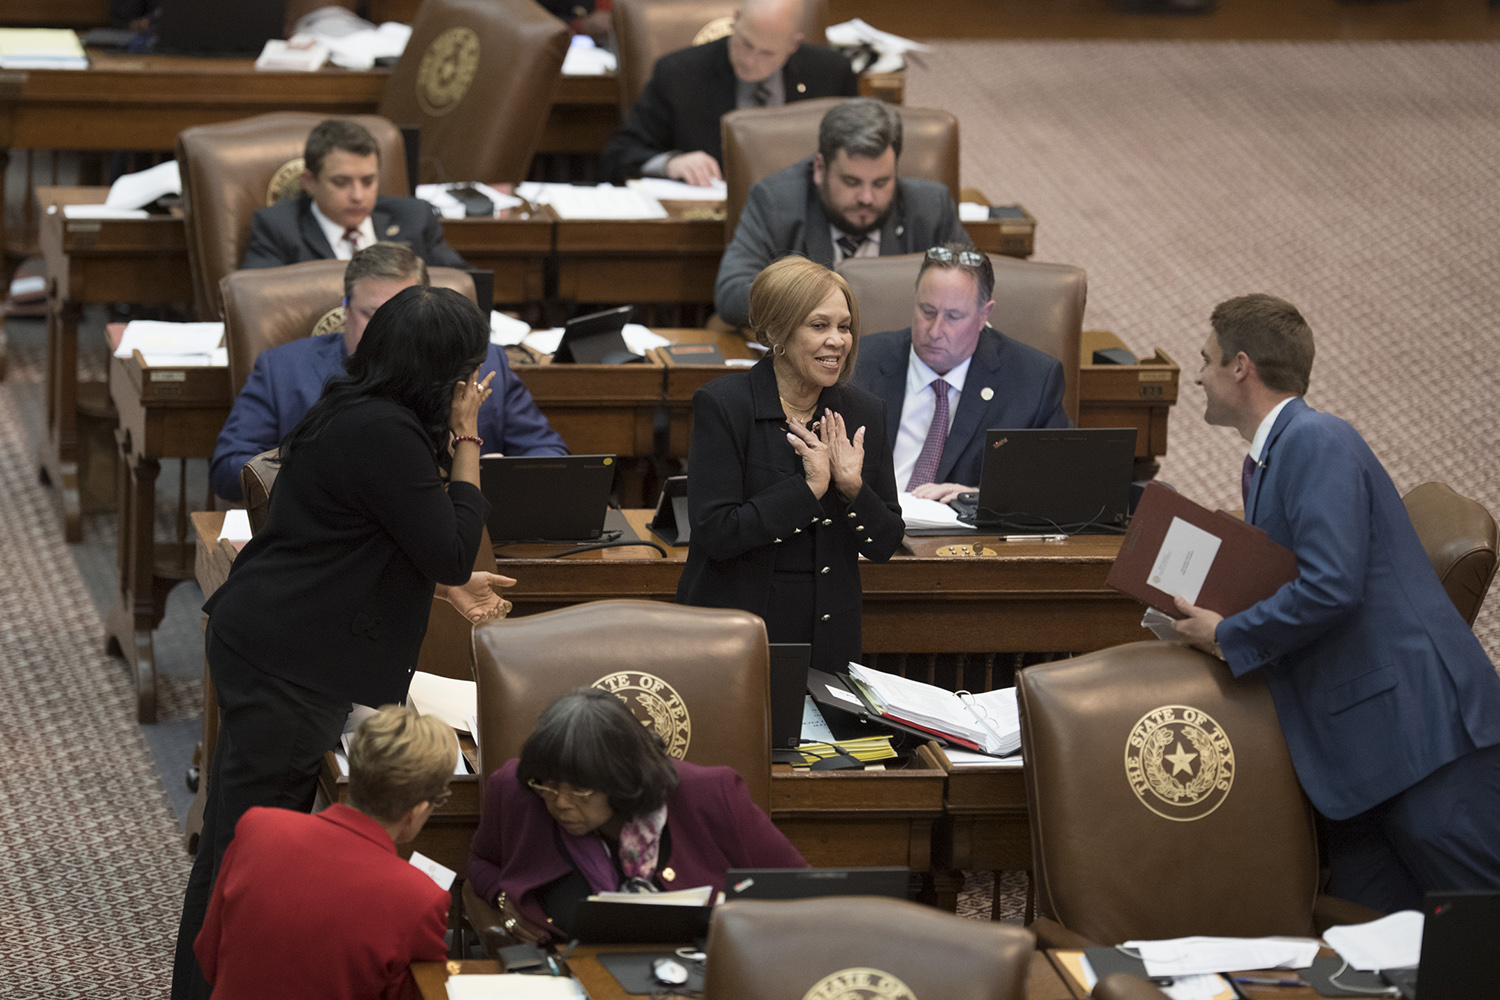 As the night wore on, amendments to the budget arose, passed or failed as the House crafted its final version. Here, Helen Giddings, D-DeSoto, has a light-hearted moment with fellow legislators.